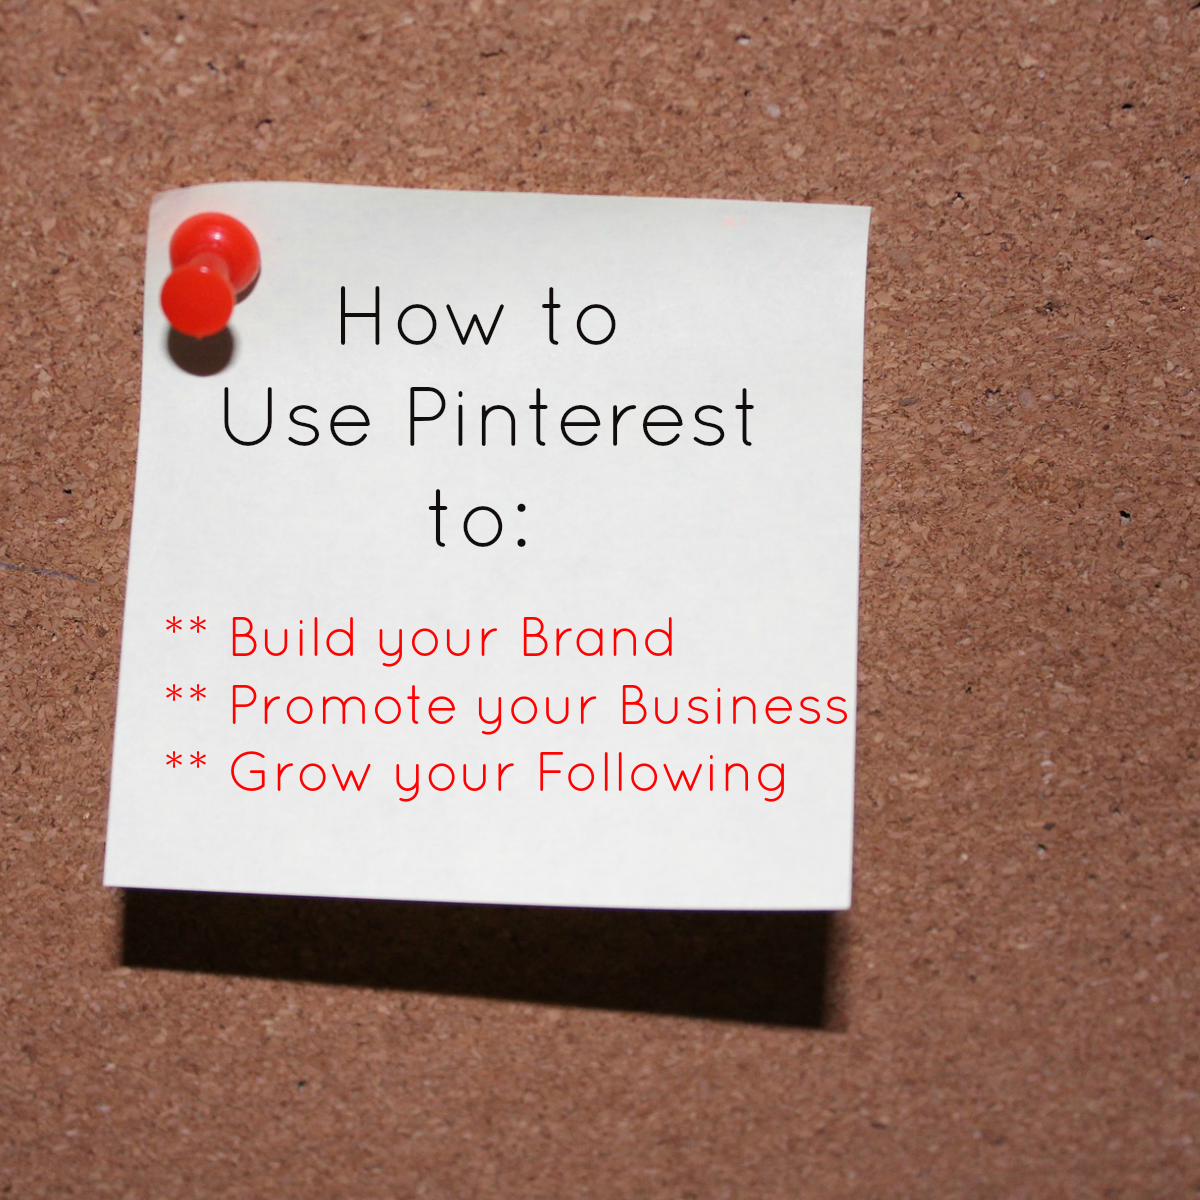 How to Use Pinterest to: Build your Brand, Promote your Business, and Grow your Following.